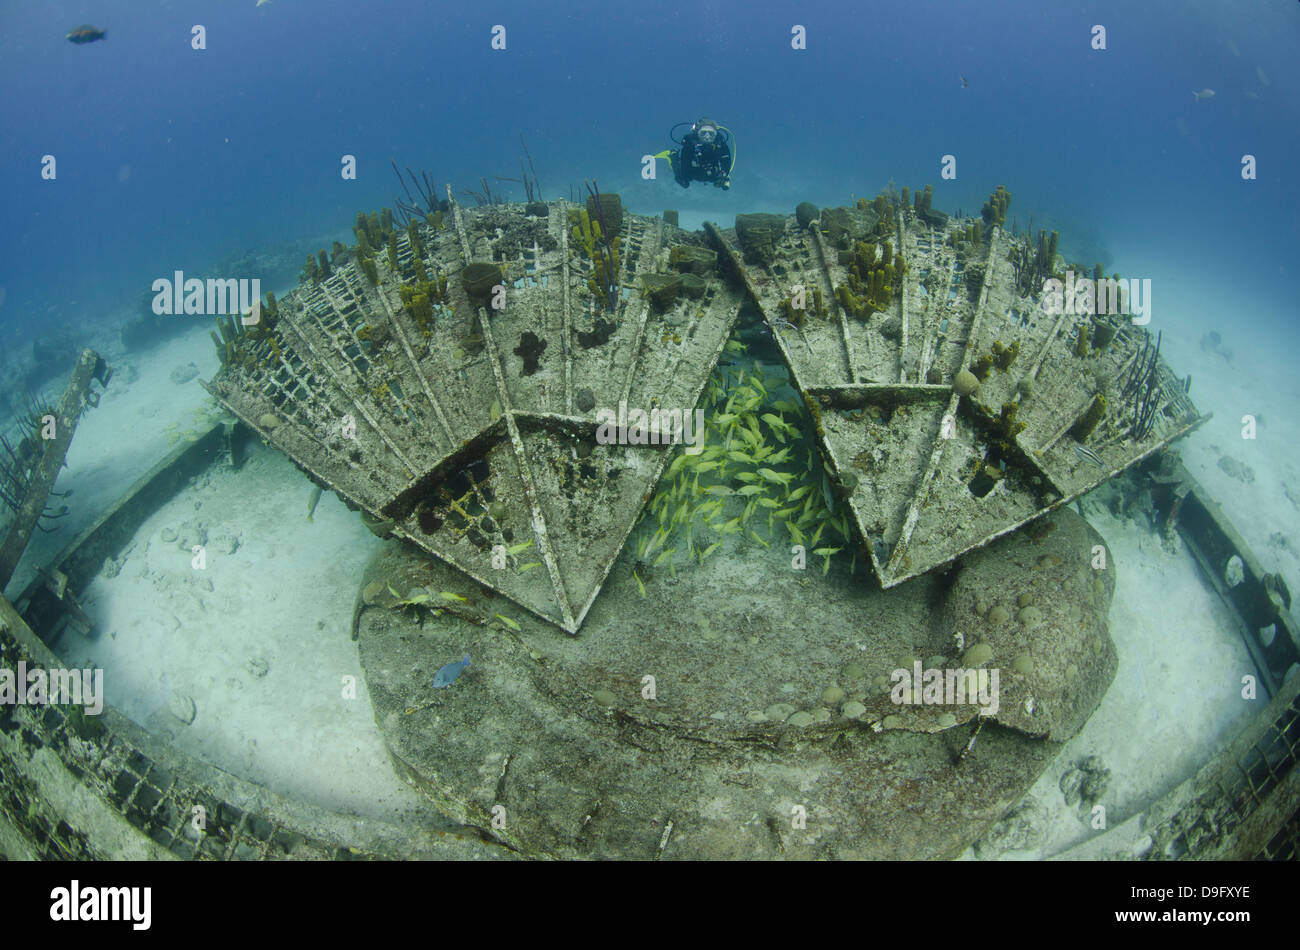 Diver explorers the Thunder dome, Turks and Caicos, West Indies, Caribbean - Stock Image